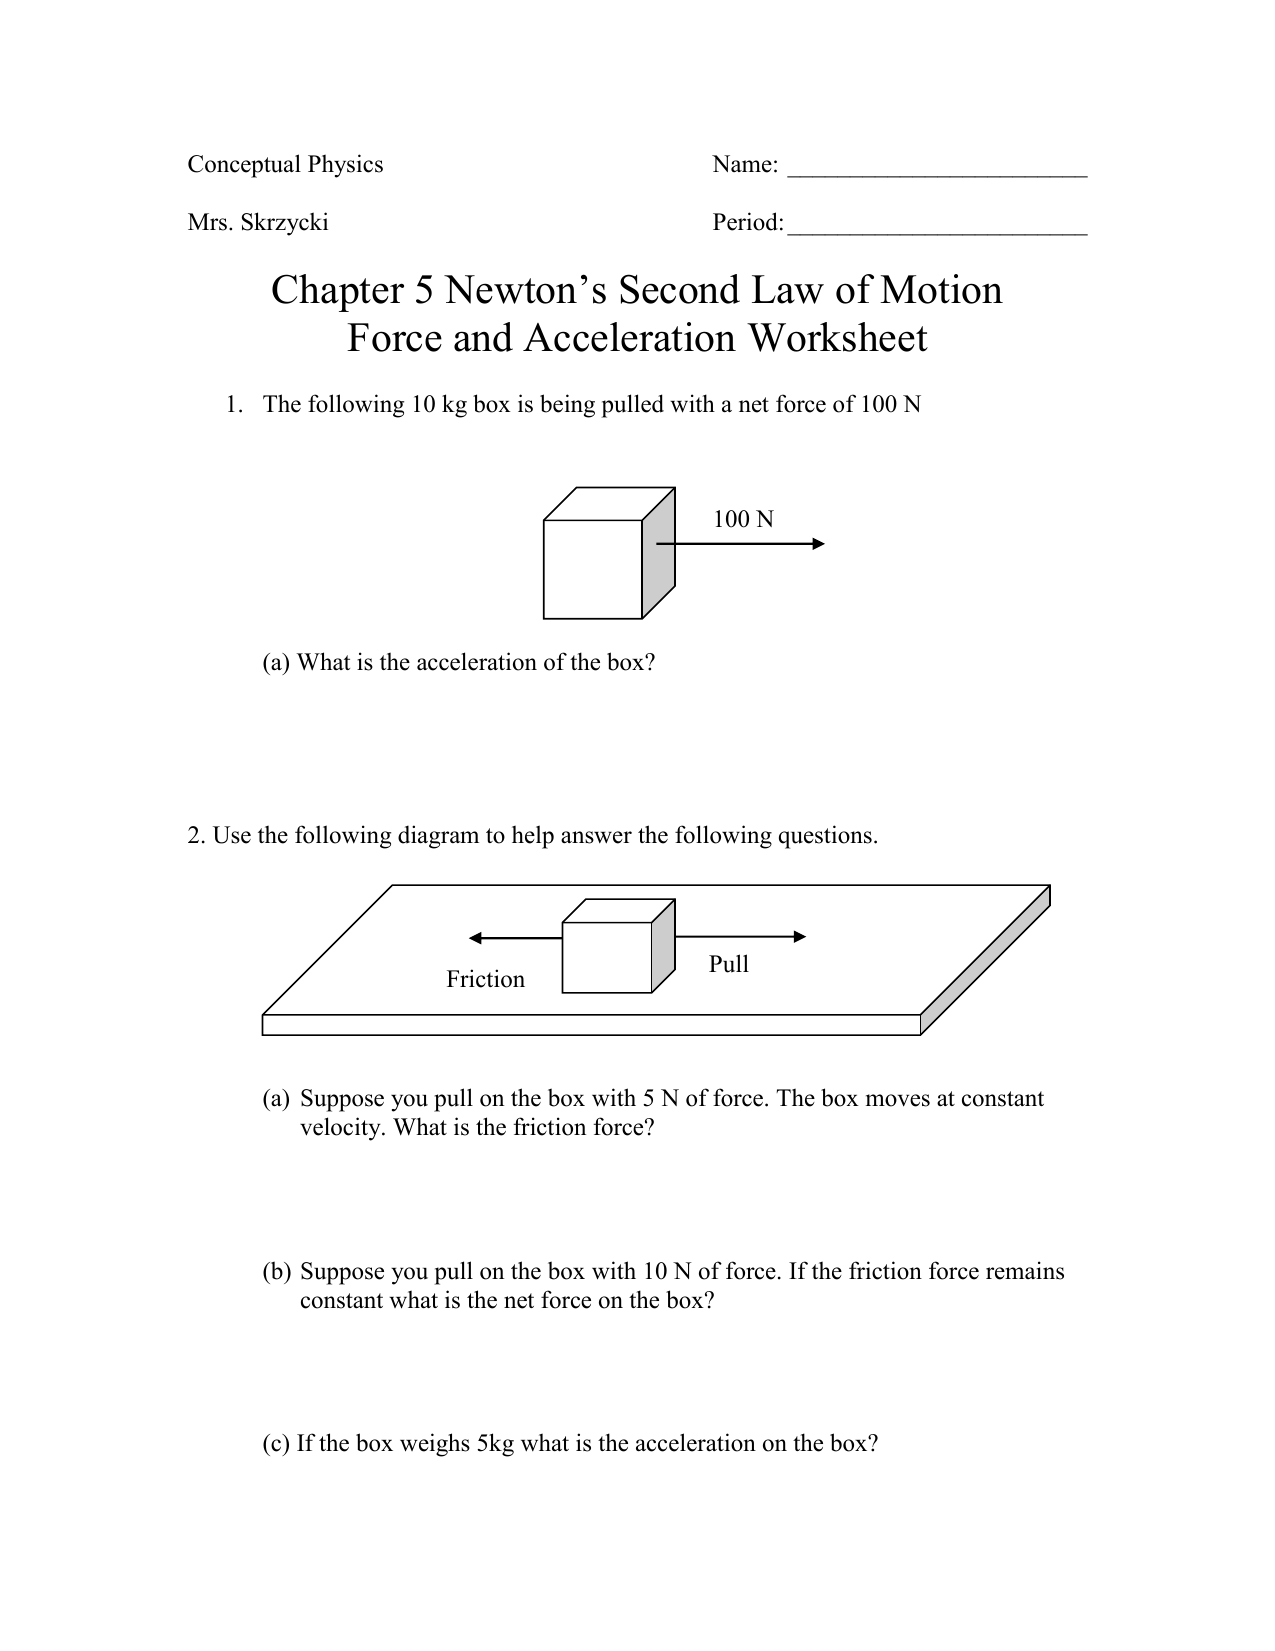 Conceptual Physics Net Force Worksheet Answers